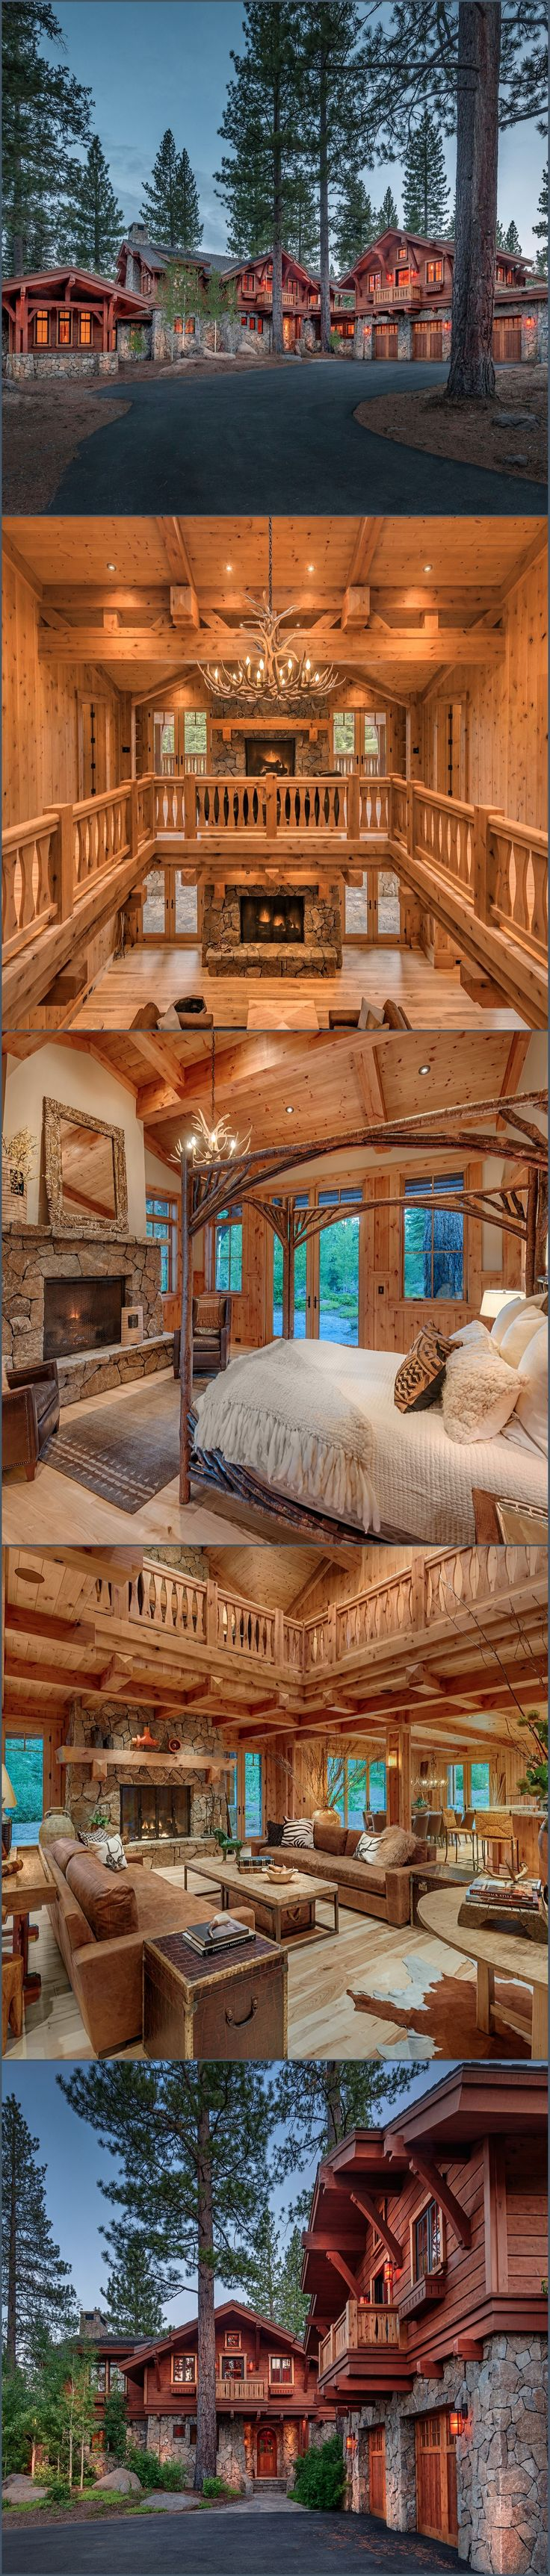 LOVE LOVE LOVE. Must make this dream of mine a reality. Log cabin style homes are my favorite